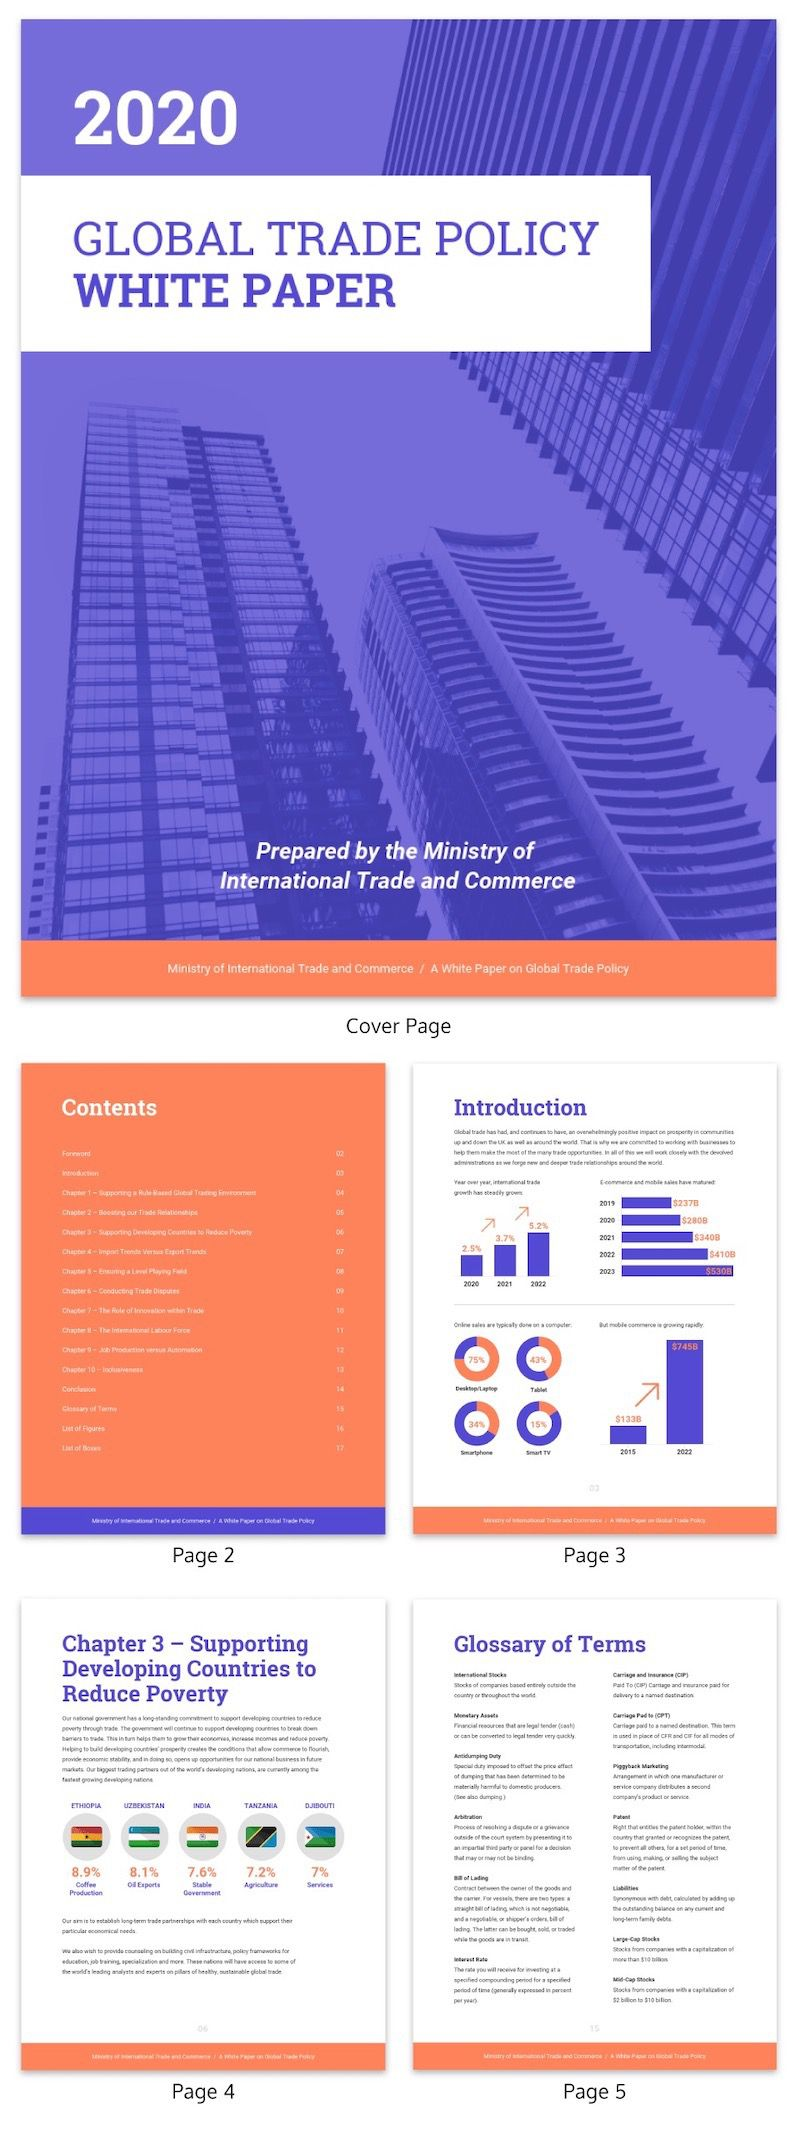 005 Unusual Technical White Paper Template Sample  Word Doc Free Download 2013Full